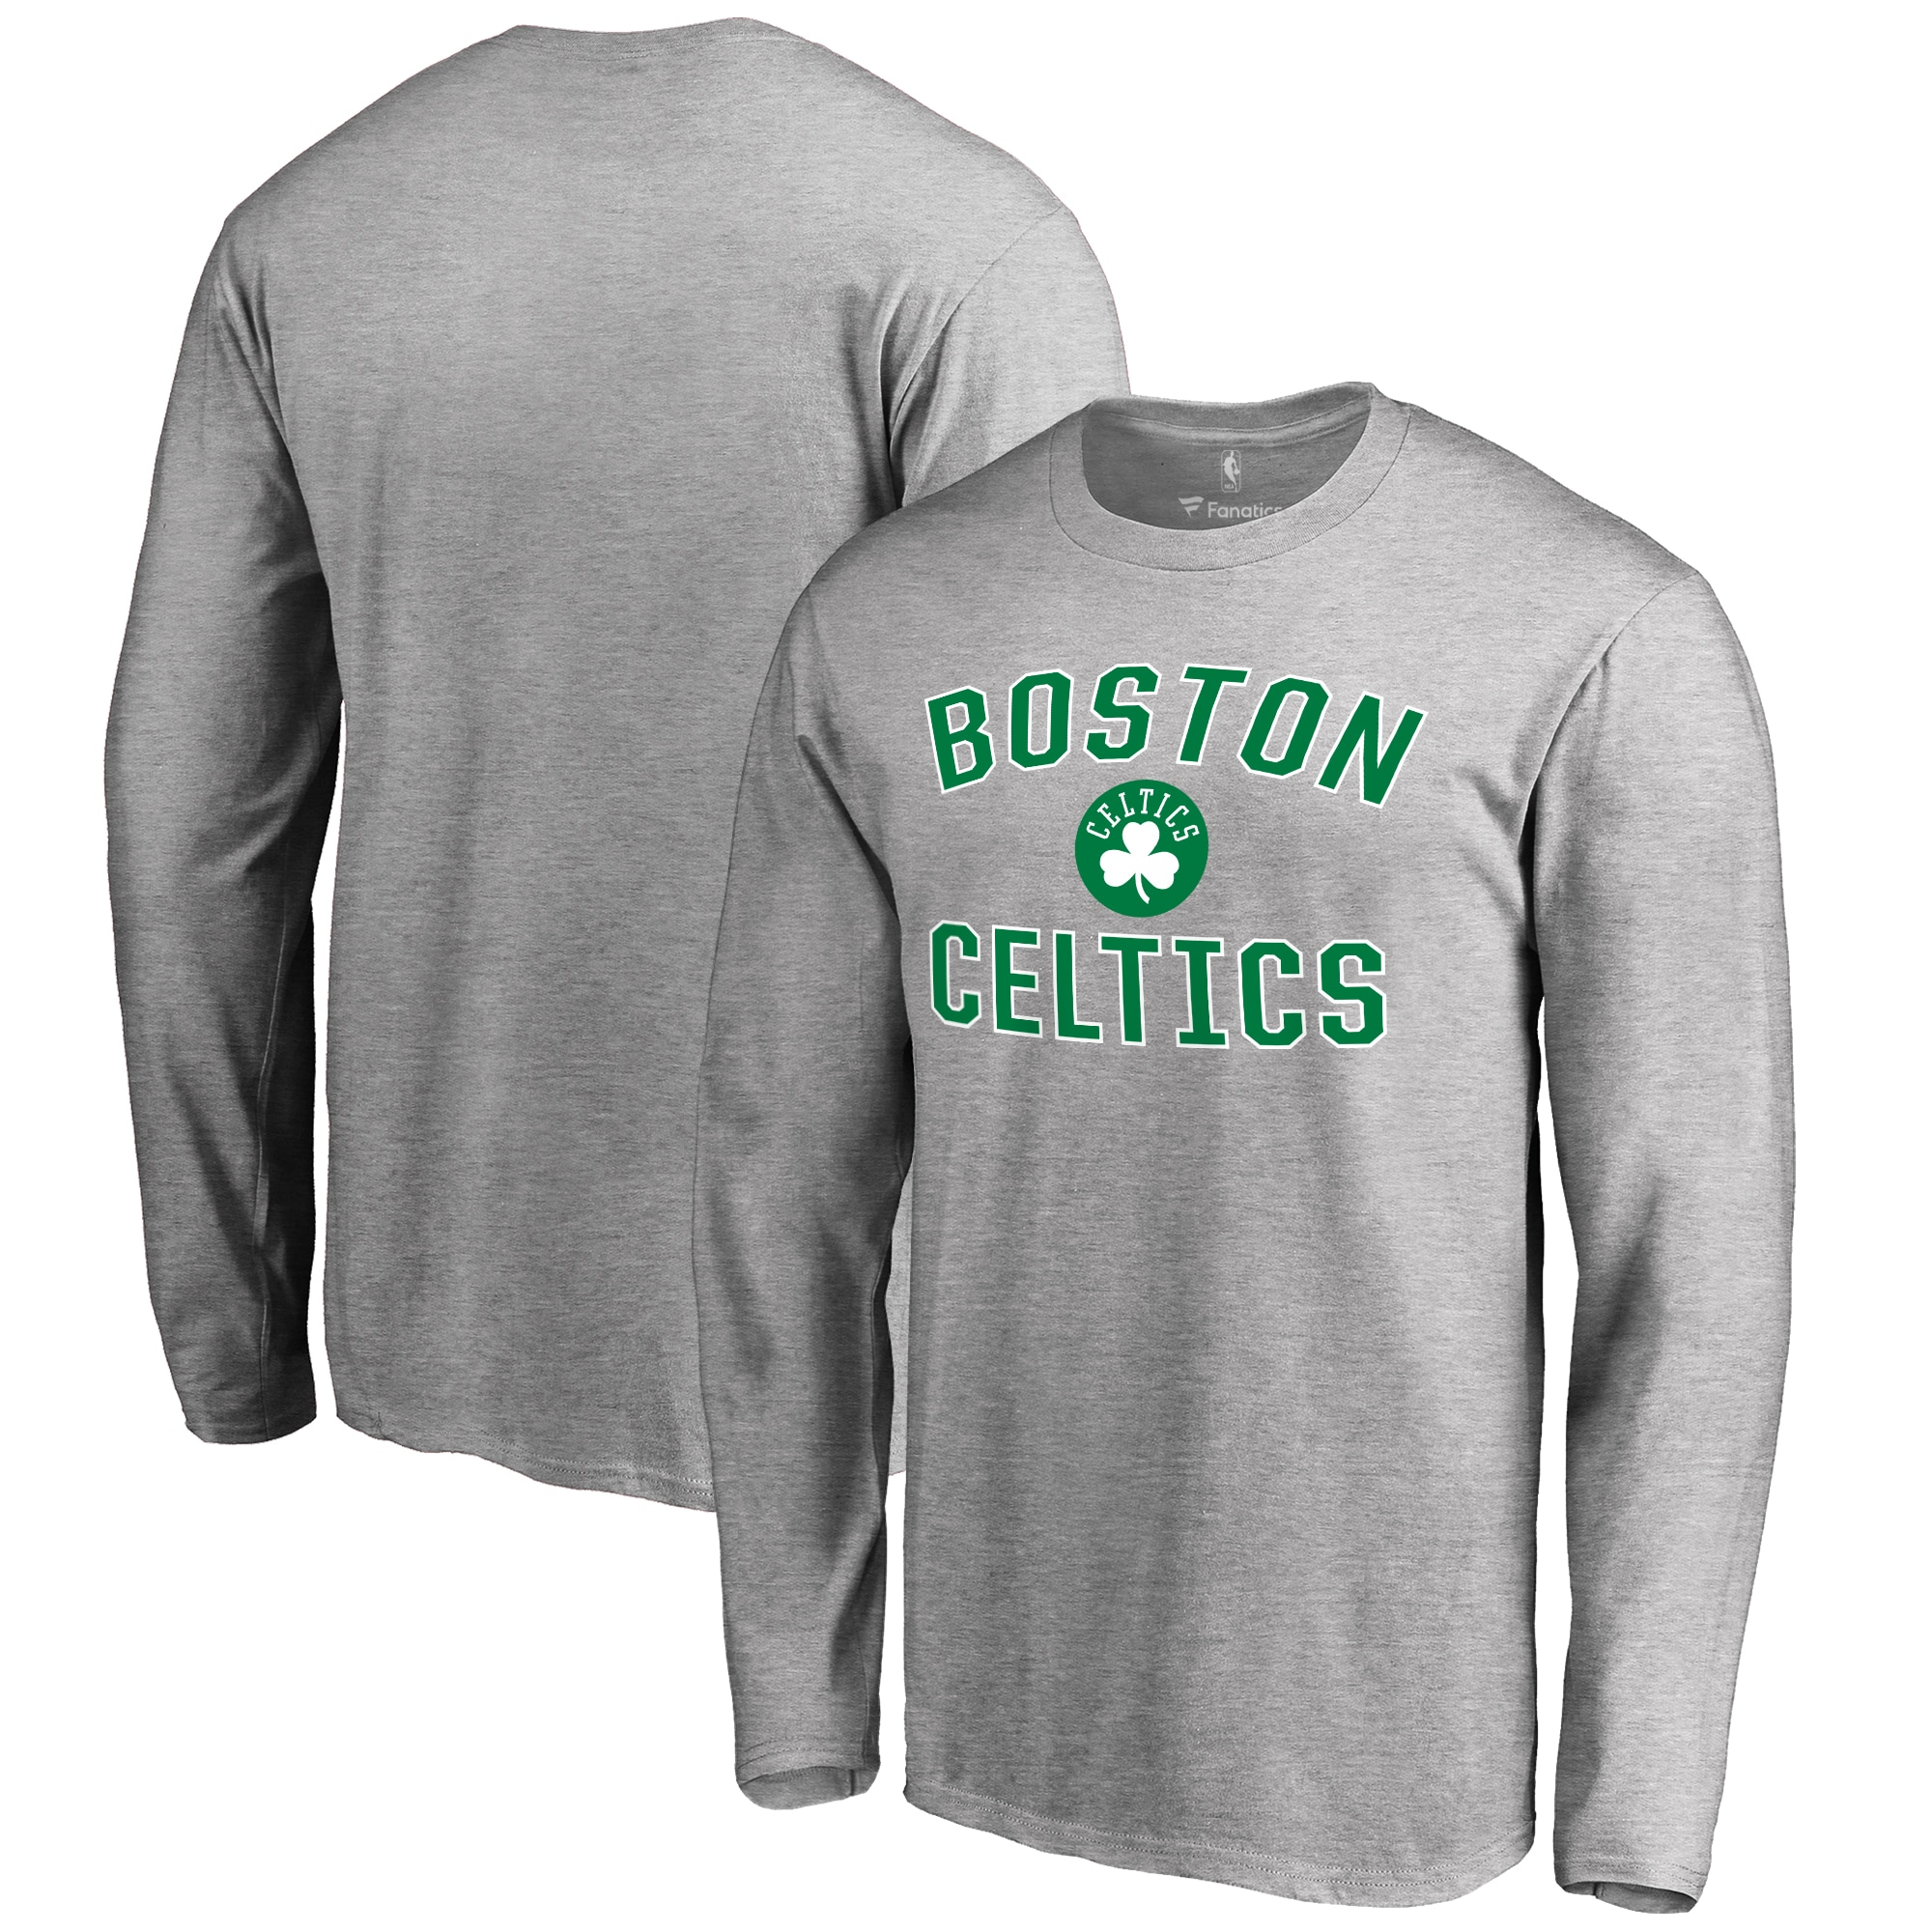 Boston Celtics Big & Tall Victory Arch Long Sleeve T-Shirt - Ash